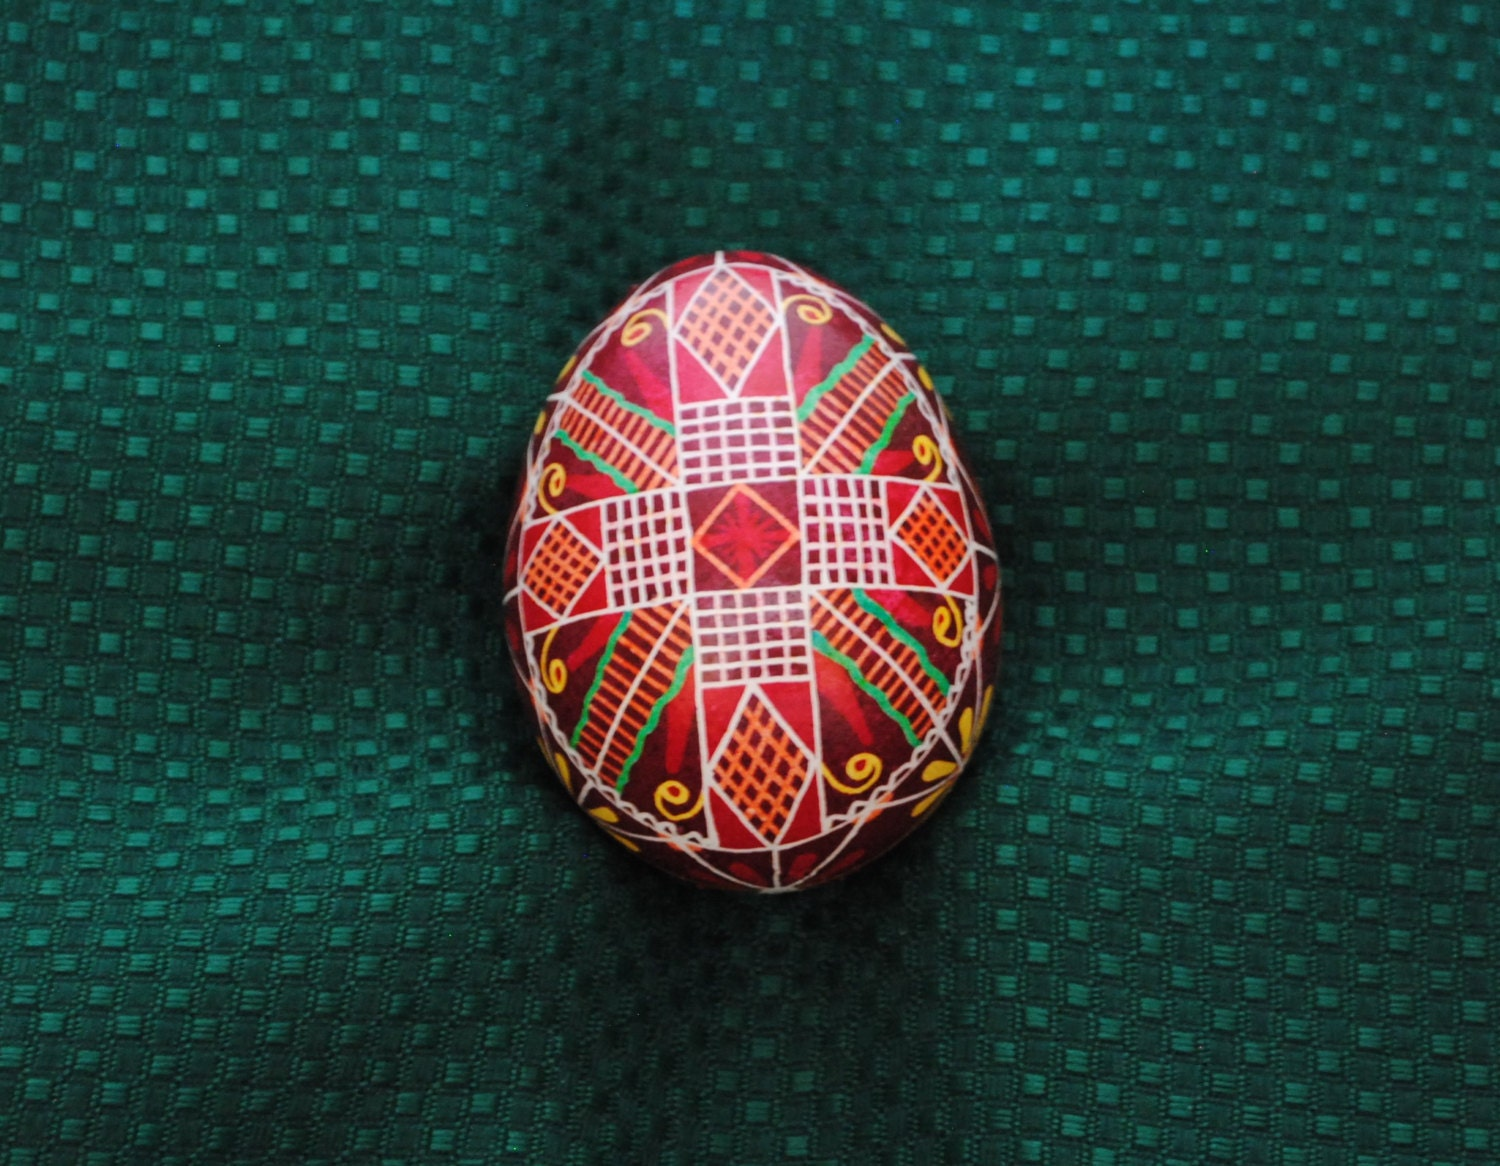 pysanky on chicken egg dark red and scarlet prominent colors